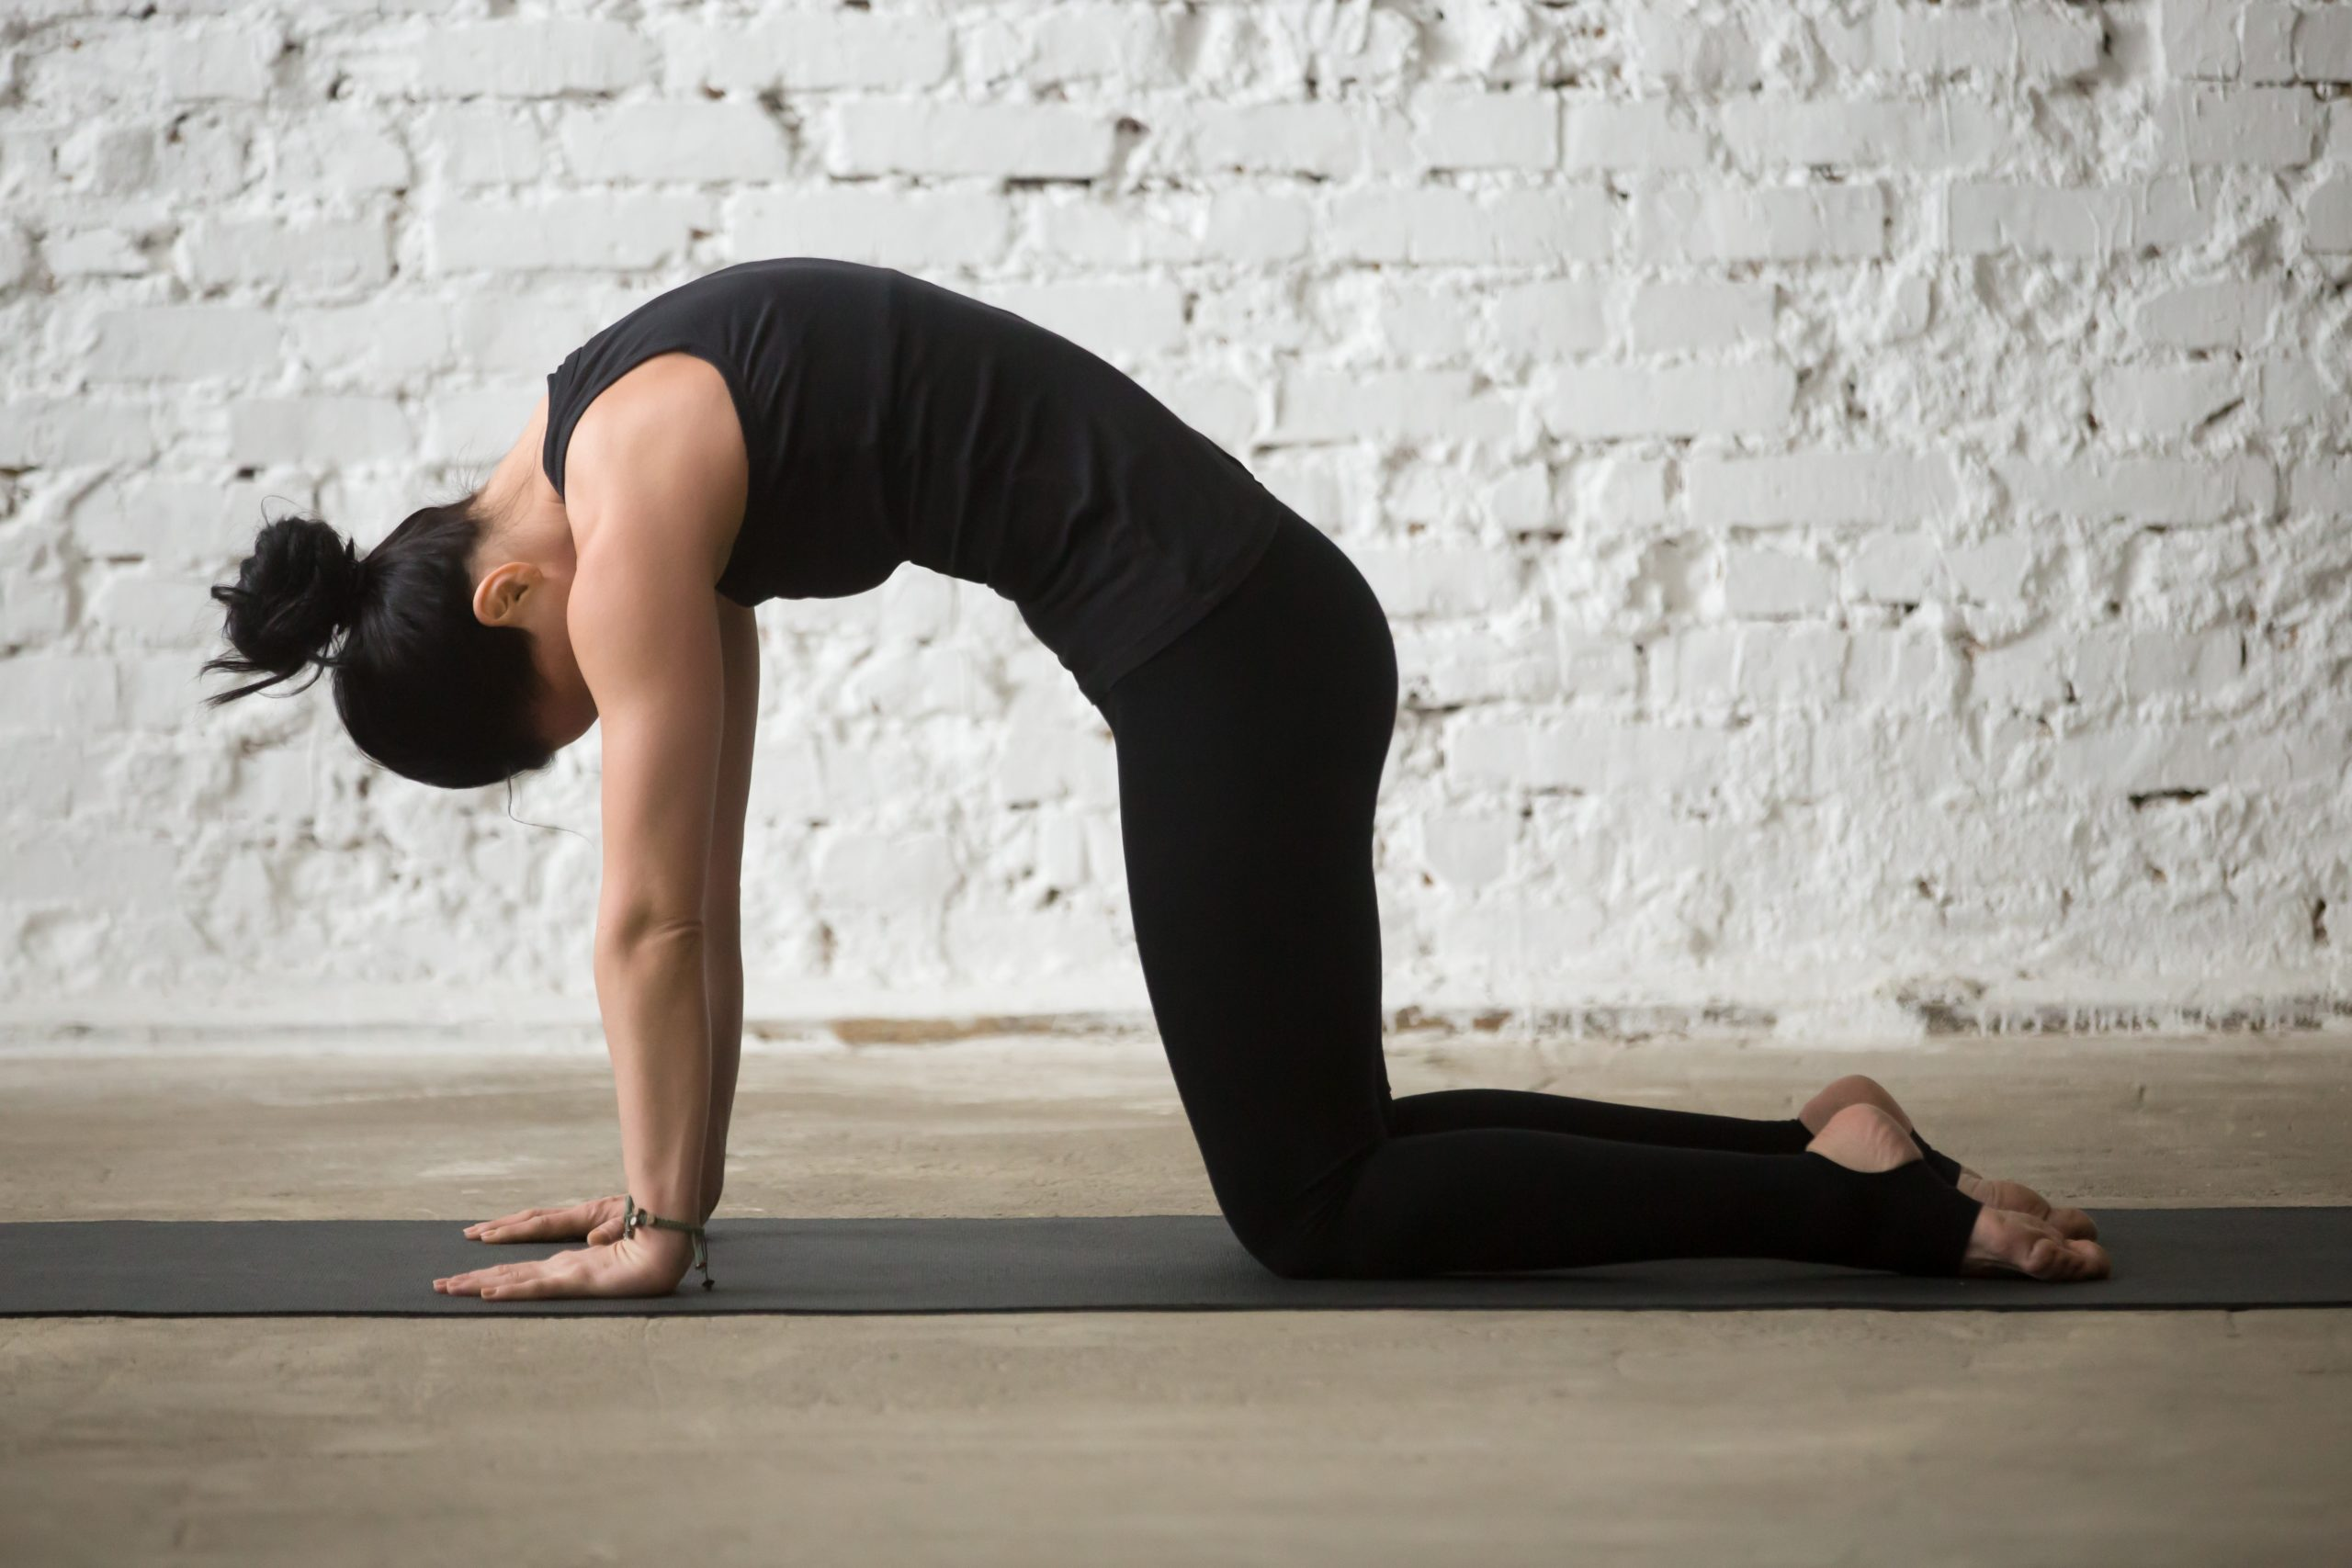 6 Yoga Poses to try for Back Pain - Cat Pose